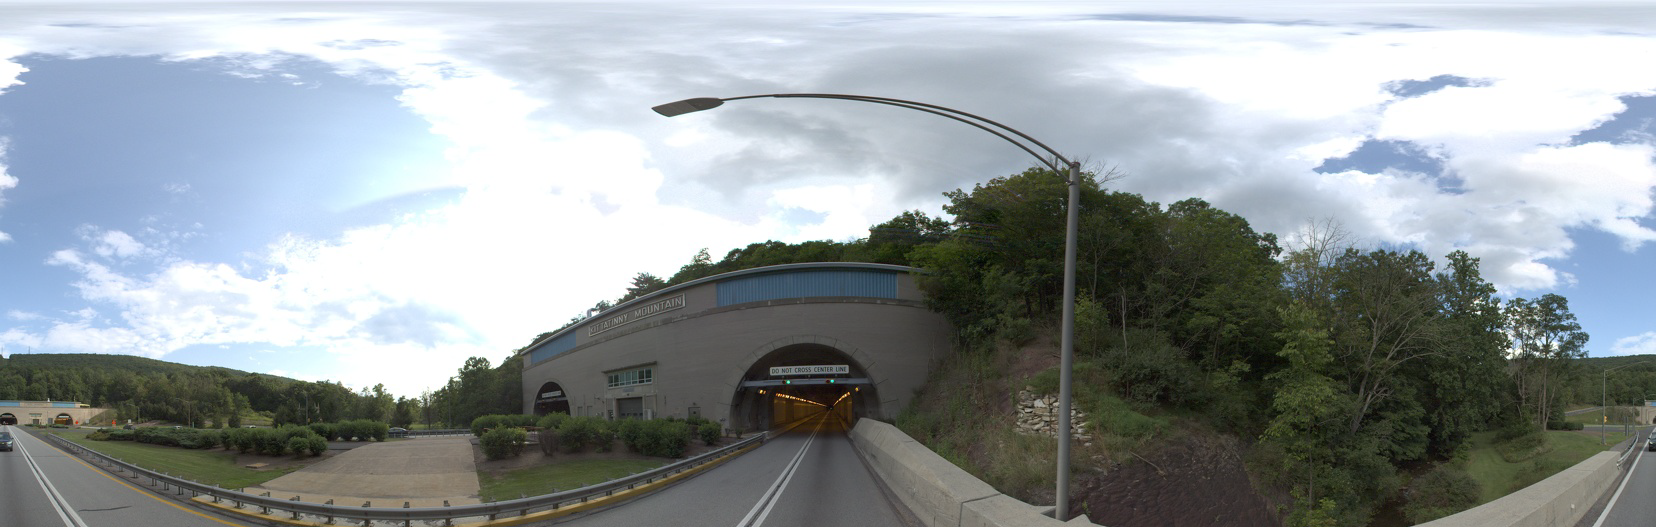 Pennsylvania Turnpike Commission 360 Imagery